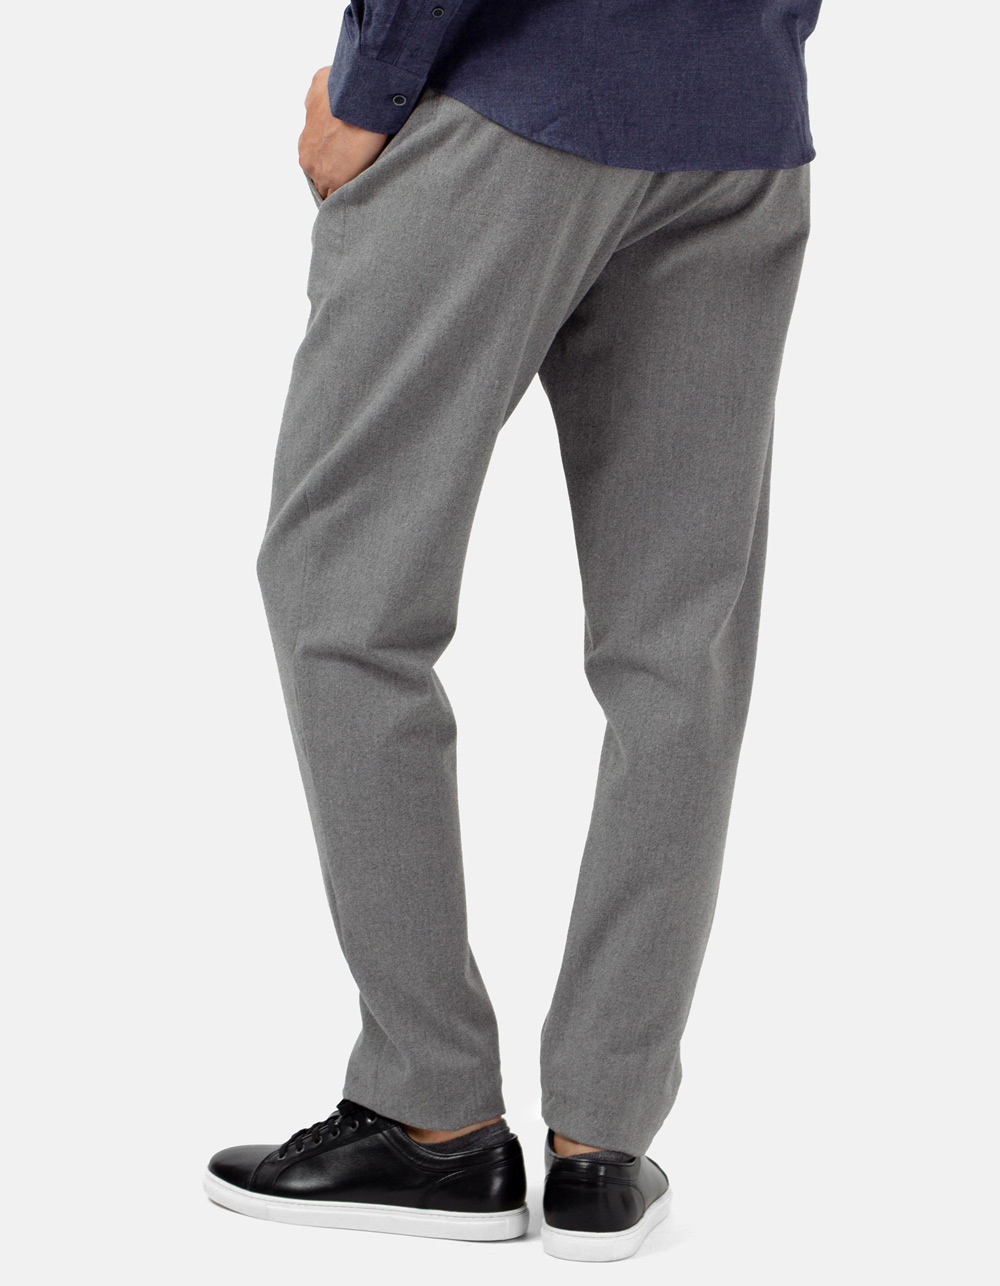 Light grey trousers with darts and wool - Backside